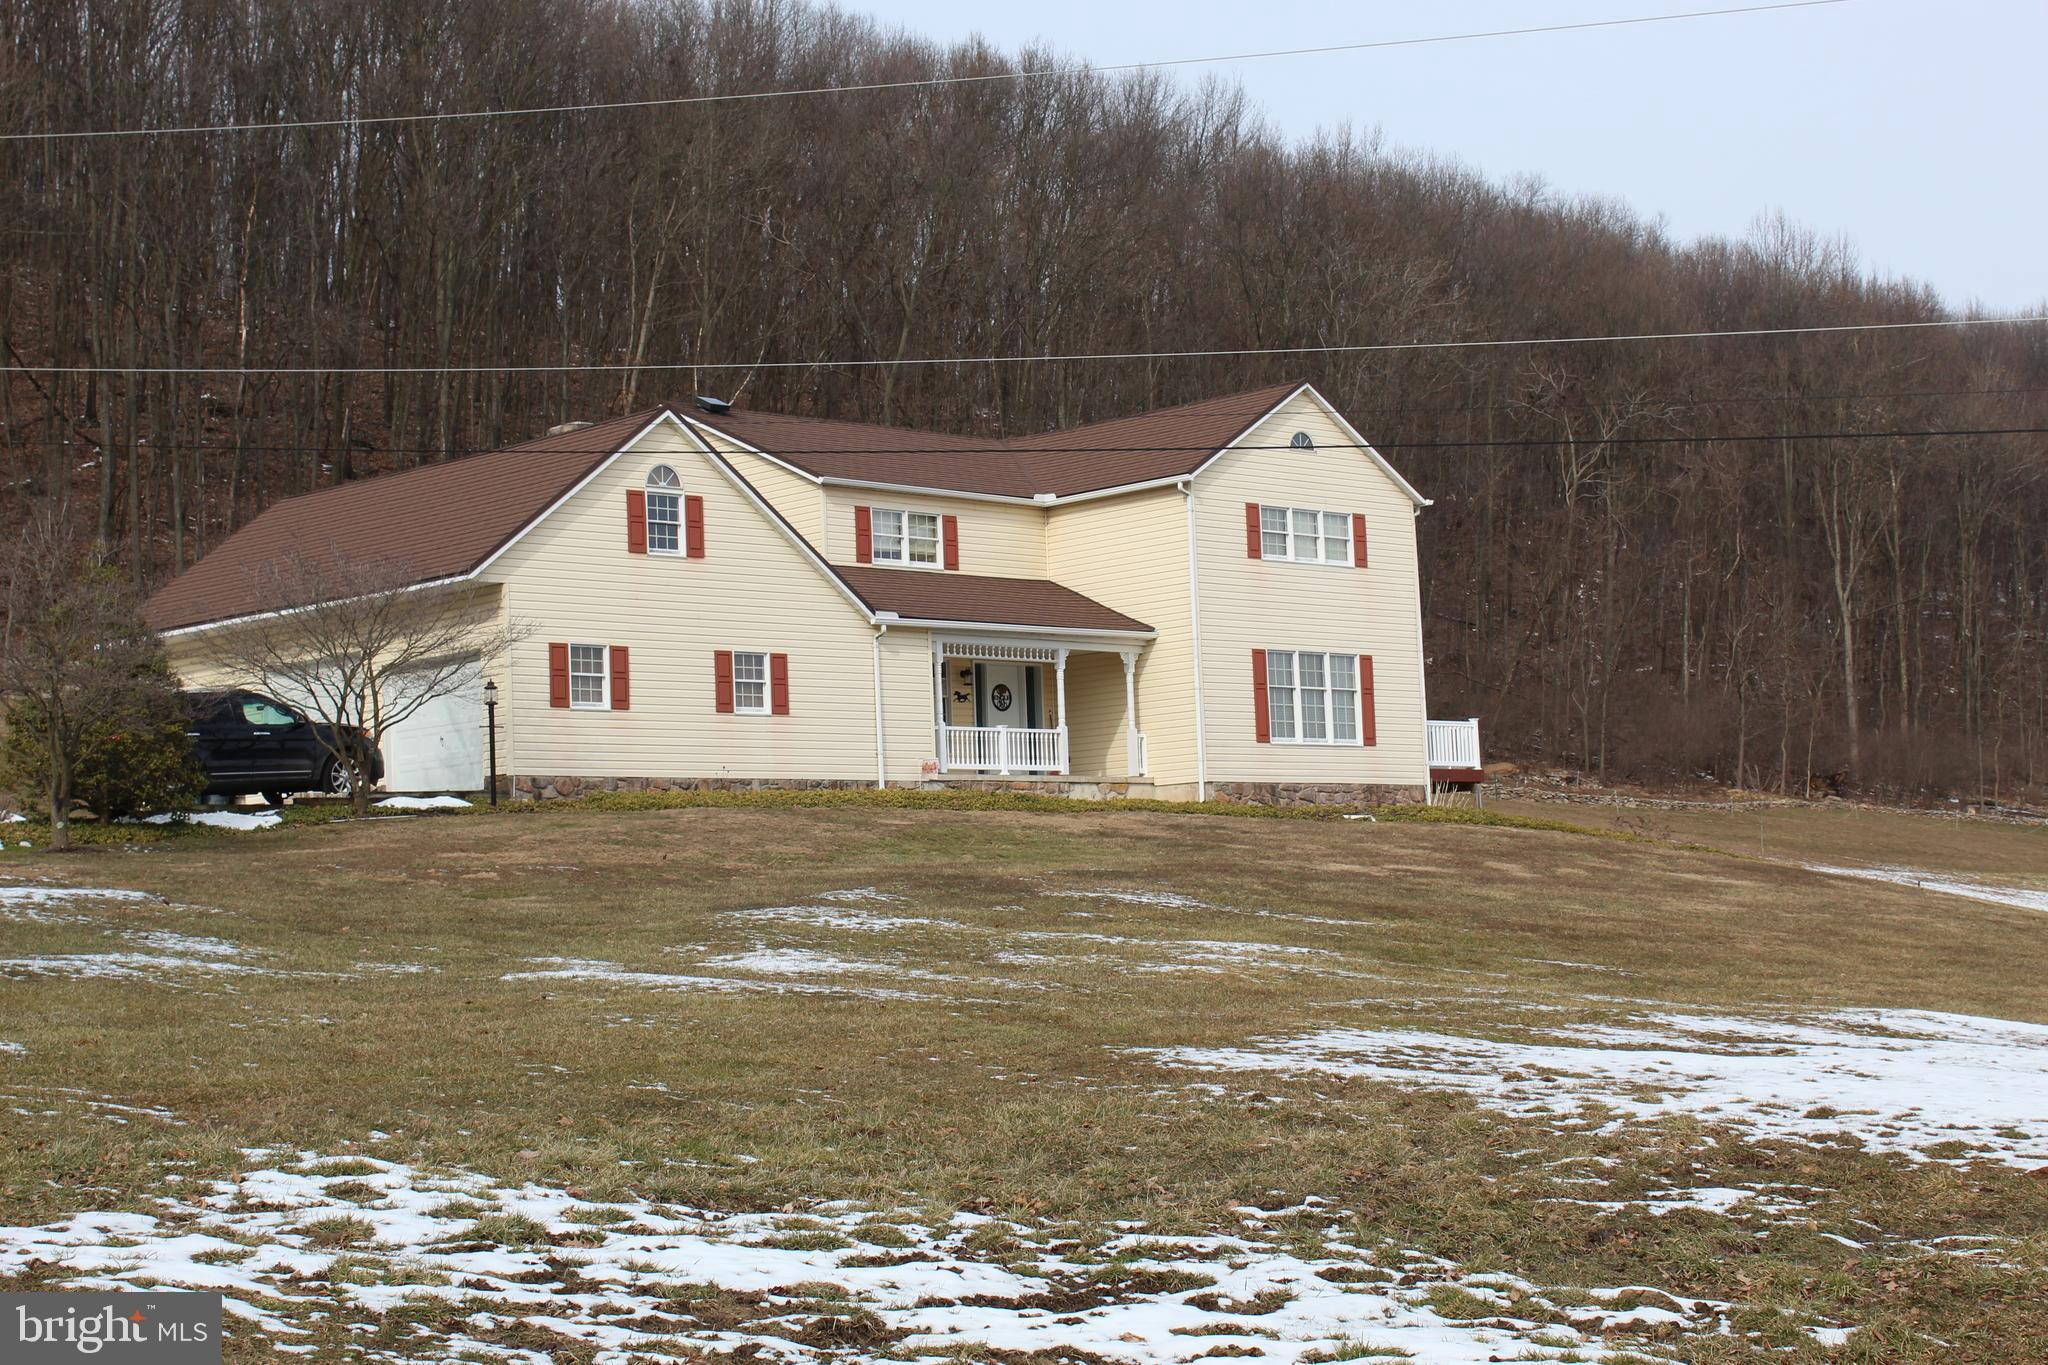 141 FISHING ROD ROAD, LIVERPOOL, PA 17045